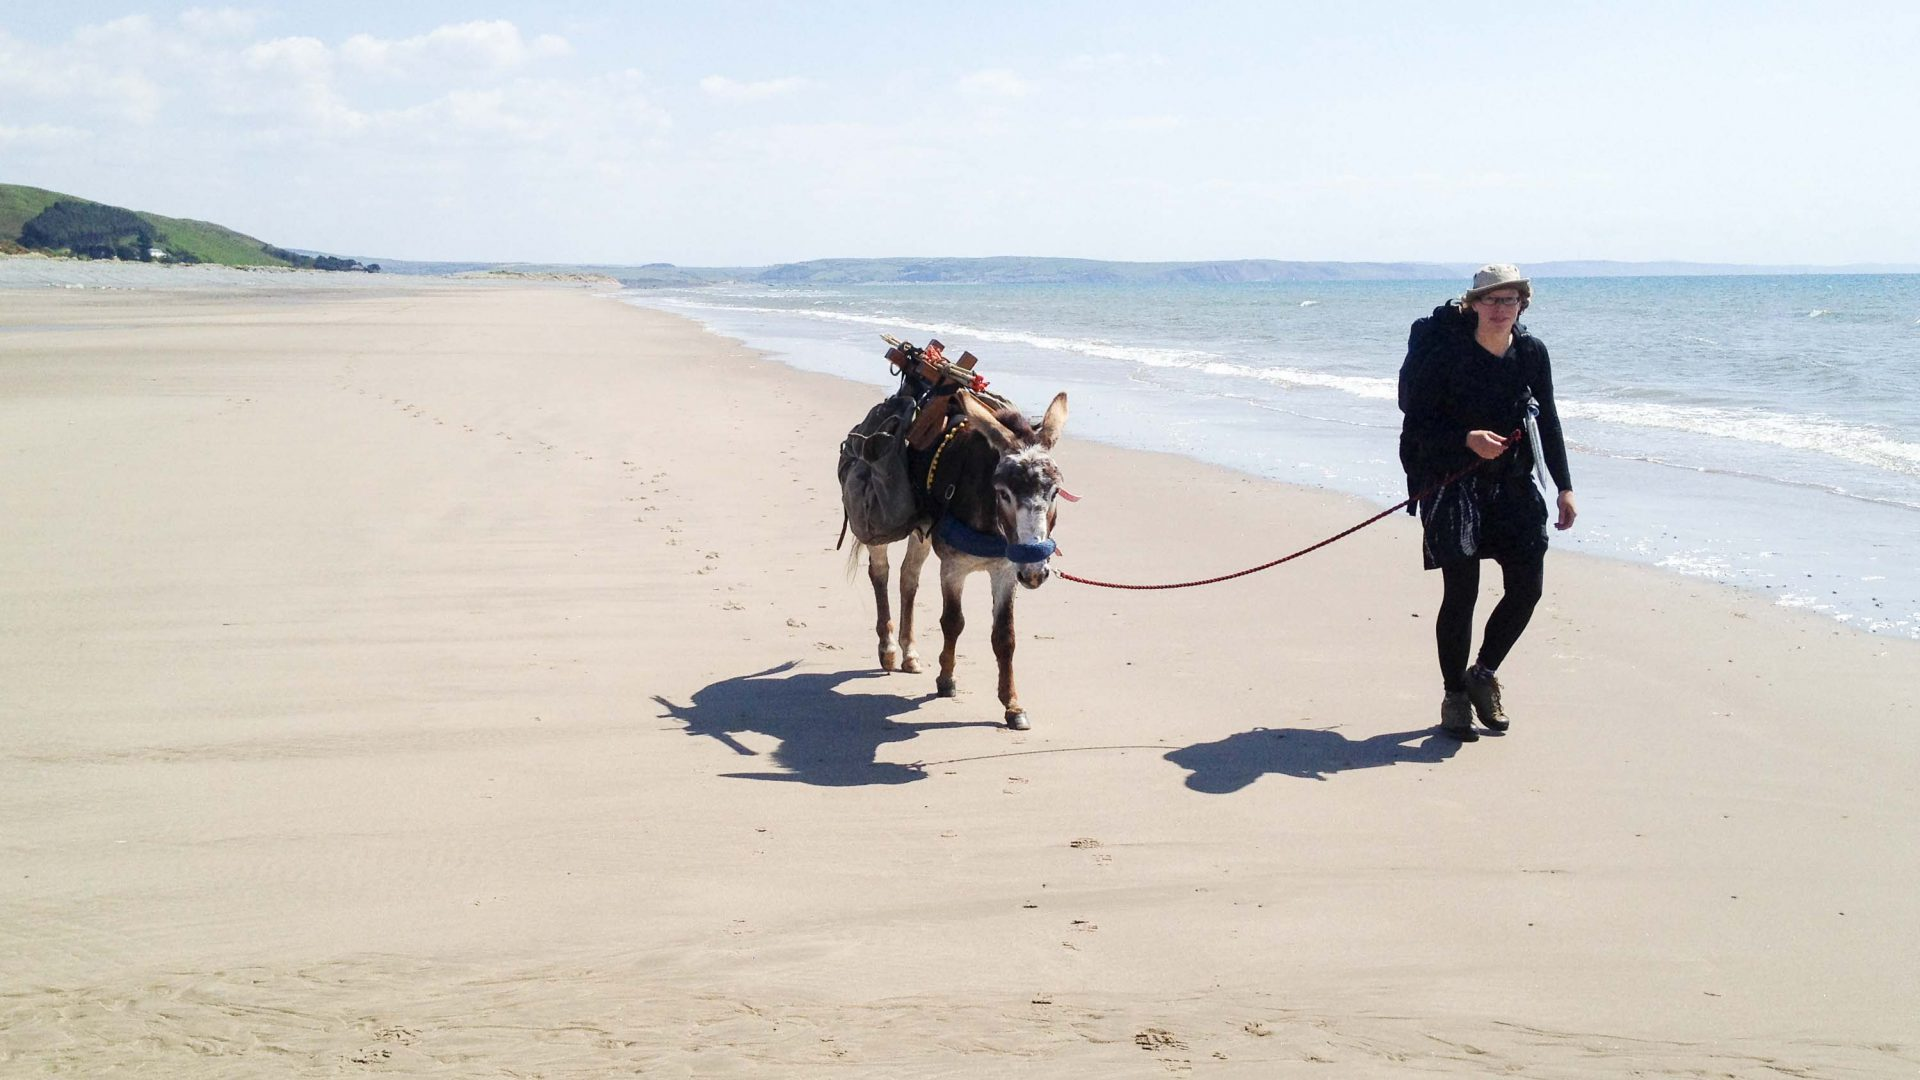 Hannah Engelkamp and her donkey Chico during their 1610-kilometer journey around Wales.